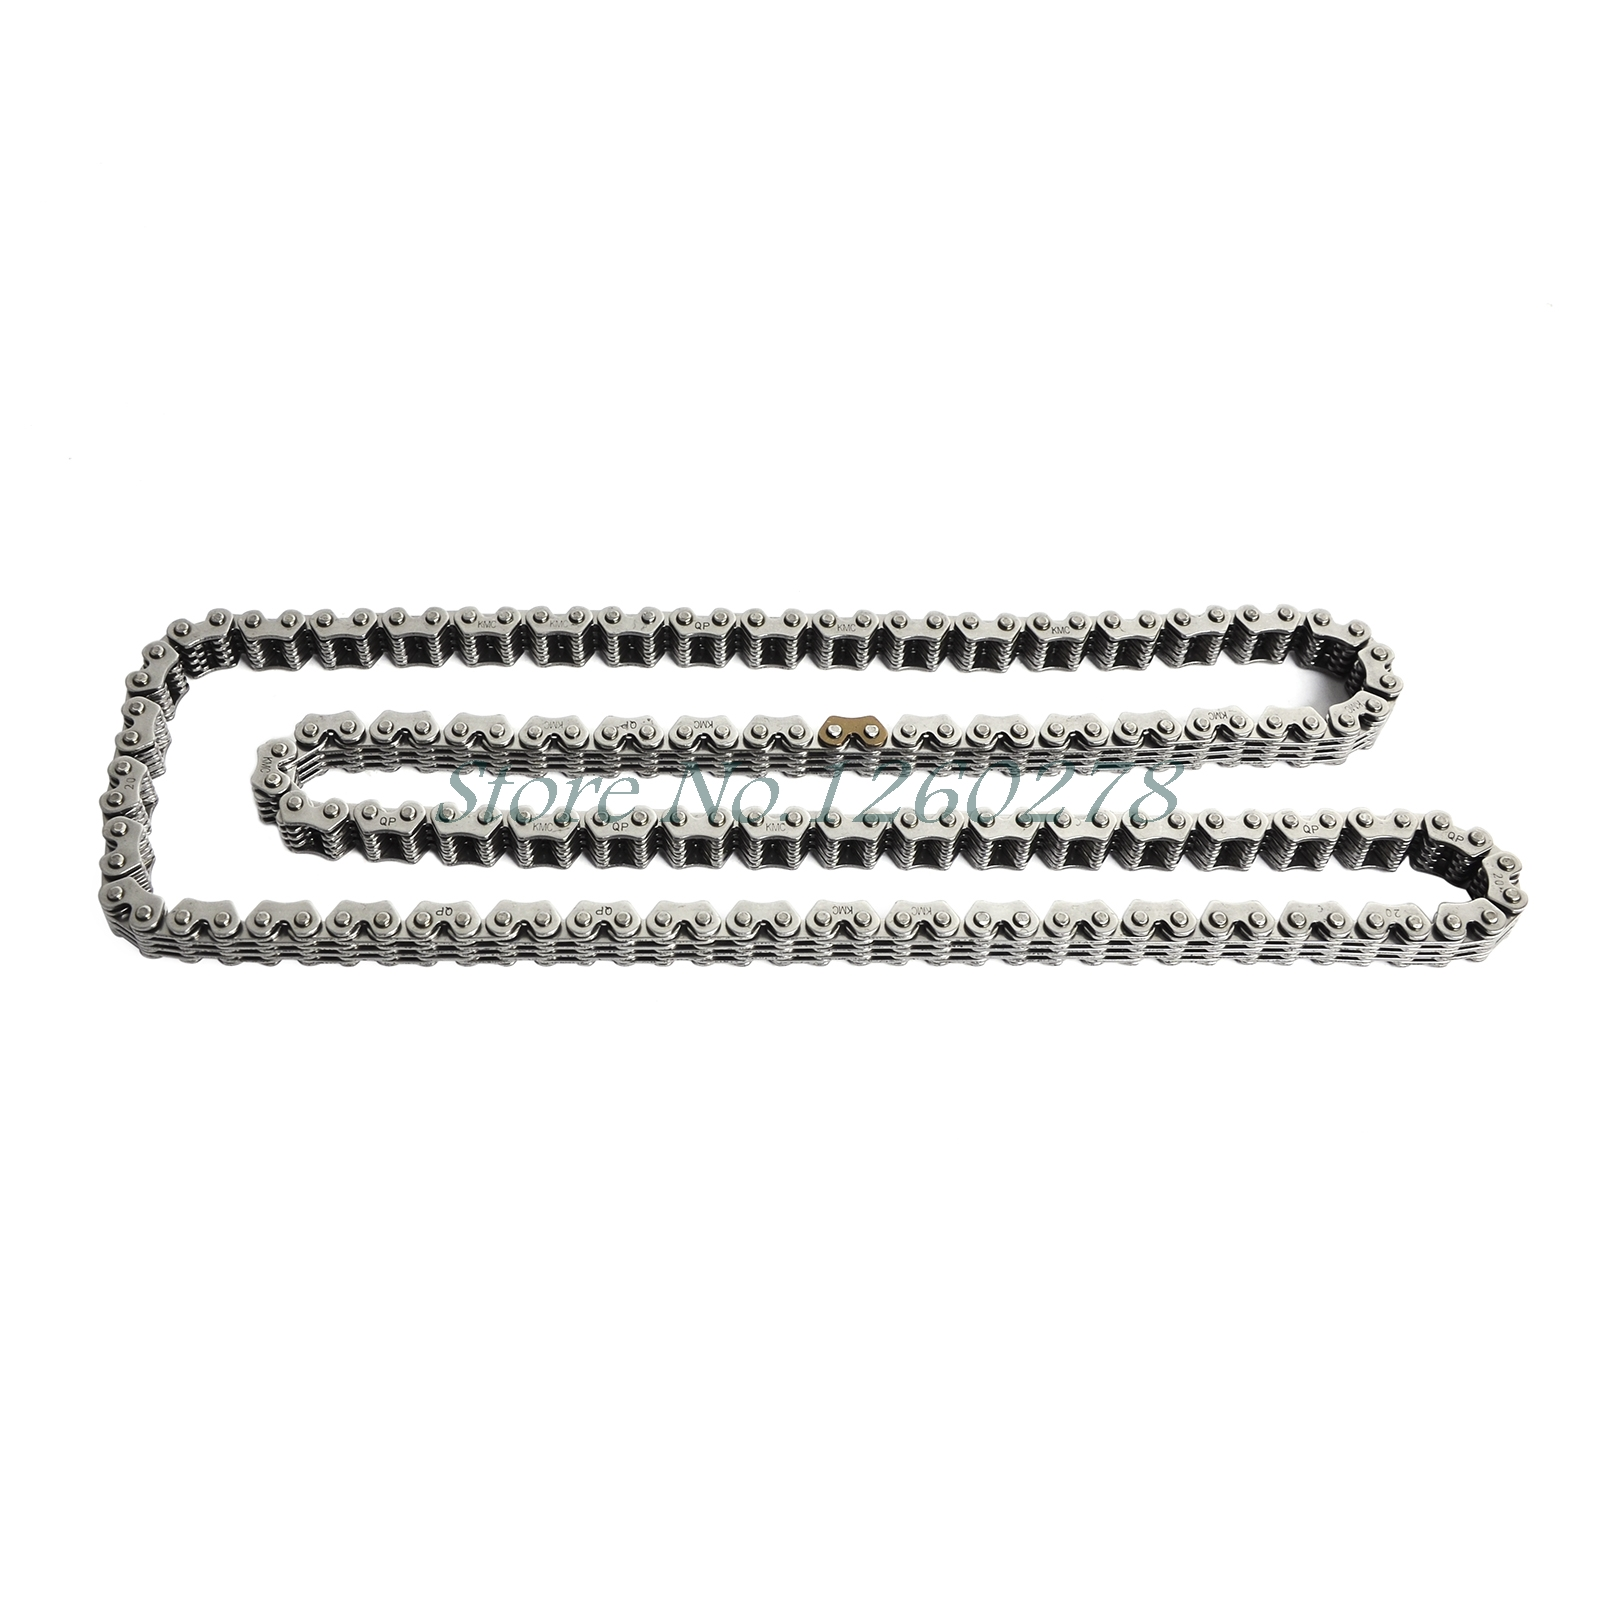 new kmc camshaft chain cam timing chain for polaris predator 500 le 2003 2007 outlaw 500 2006 2007 in chain sets from automobiles motorcycles on  [ 1600 x 1600 Pixel ]